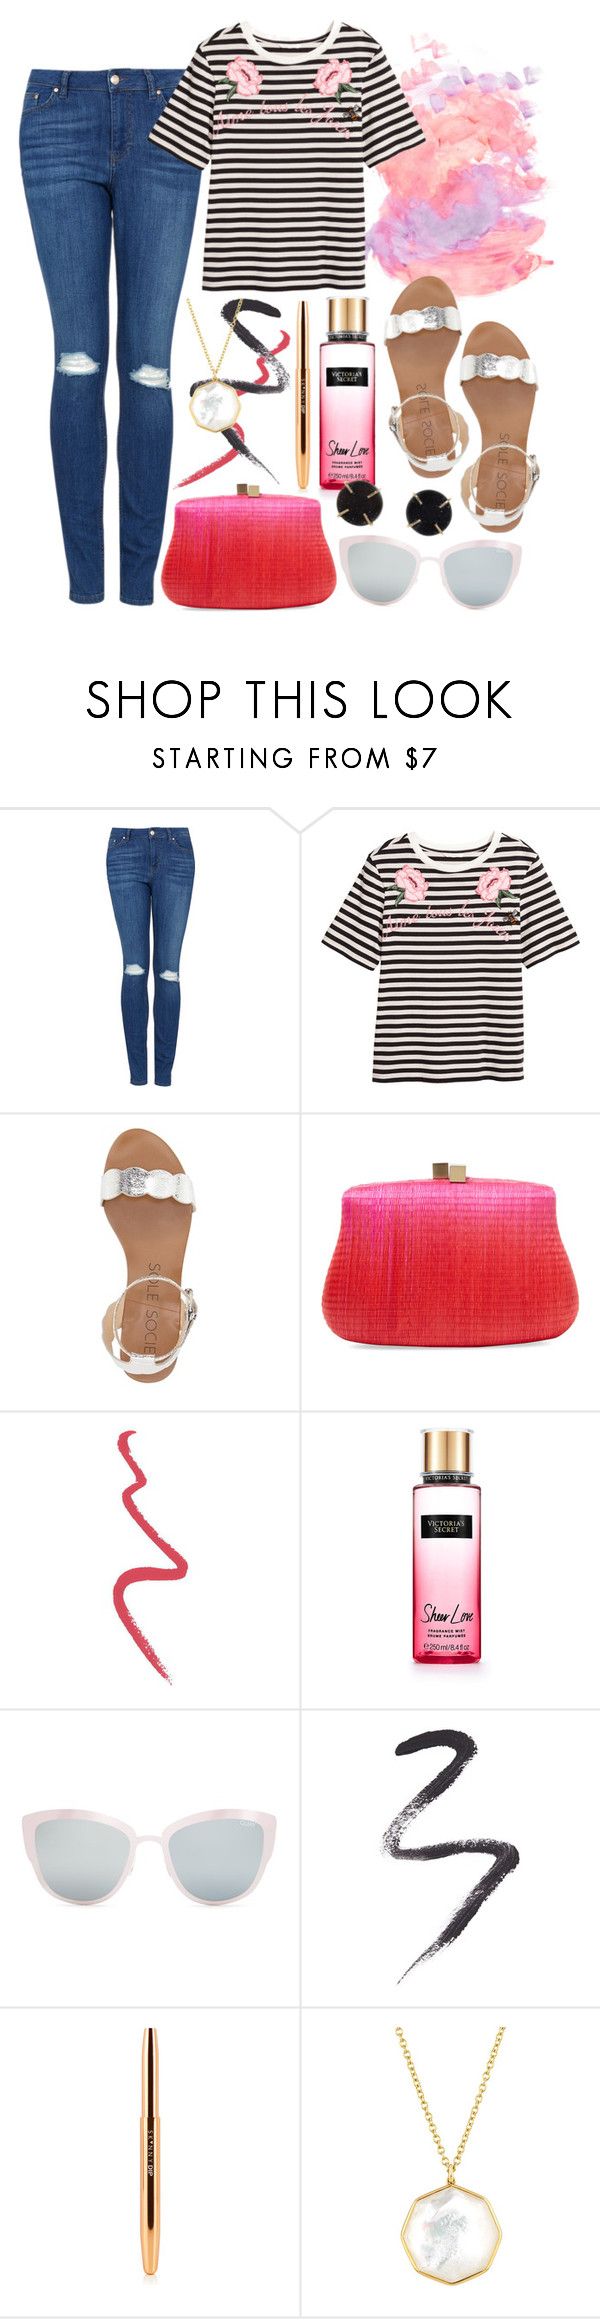 """""""Reports"""" by shellcp ❤ liked on Polyvore featuring Topshop, Sole Society, Serpui, Victoria's Secret, Ippolita and Melissa Joy Manning"""